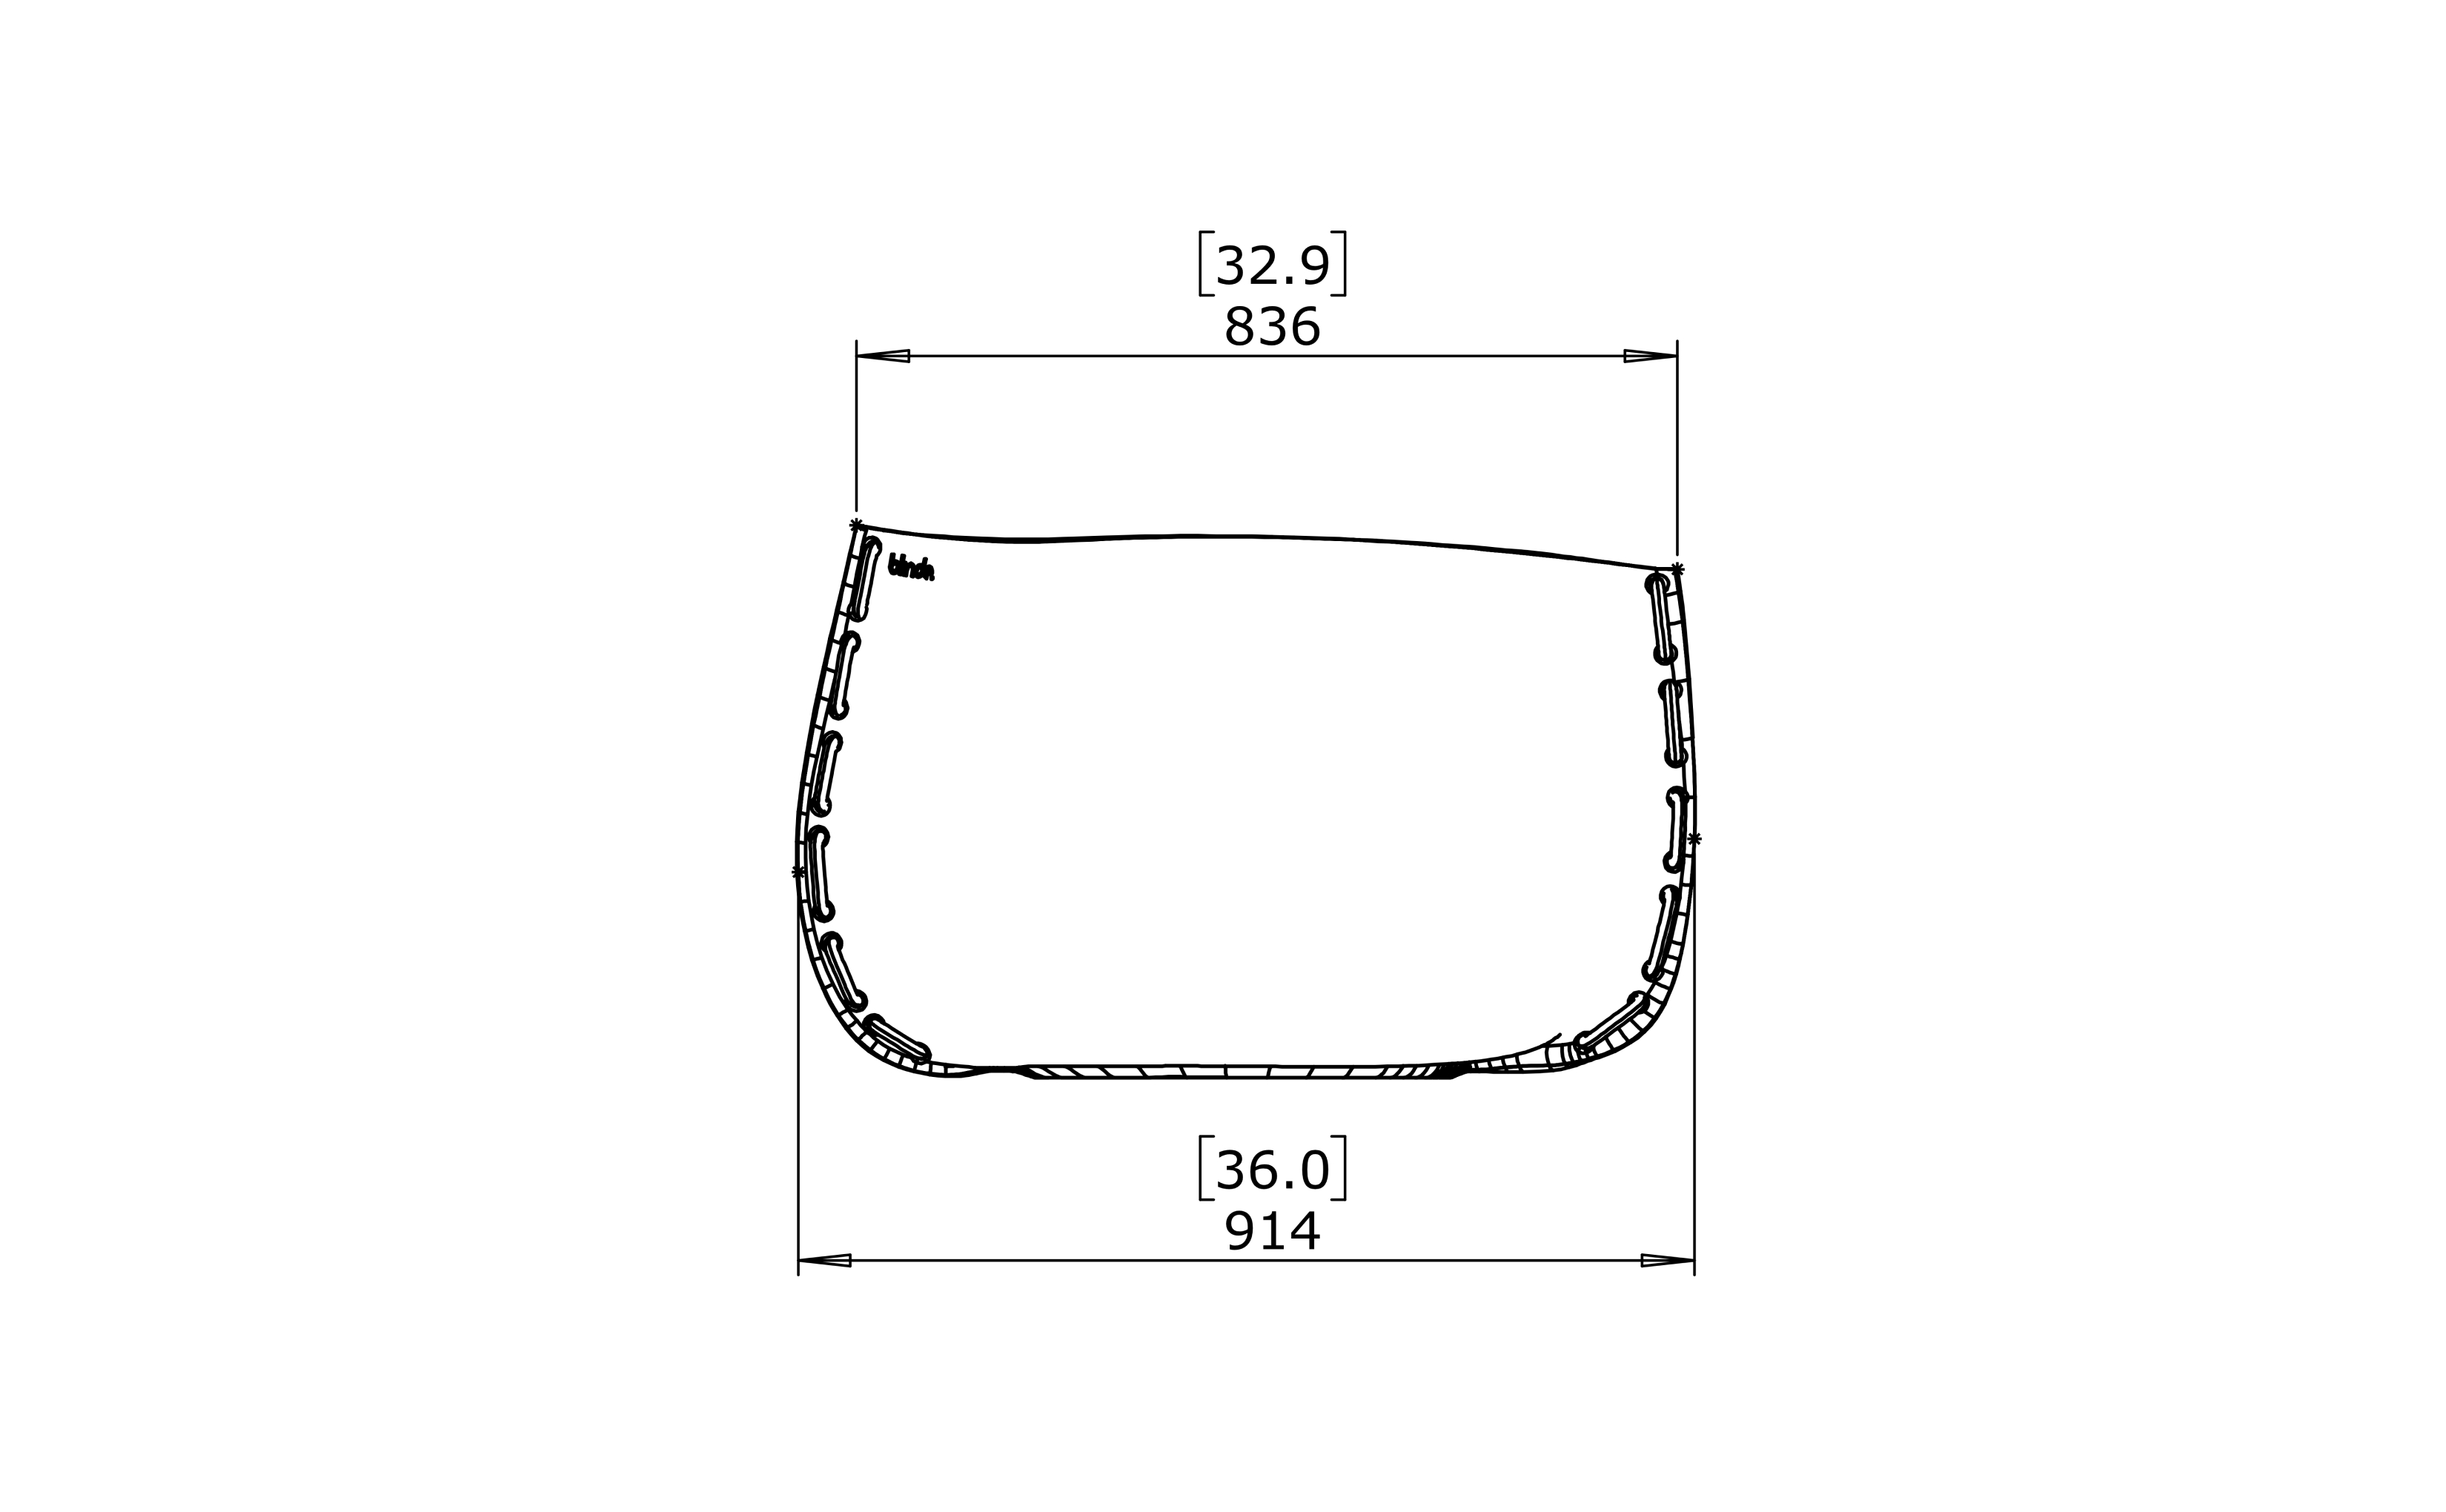 stitch-50-bld.1.p.sti.50-front-view-technical-drawing-by-blinde-design.jpg